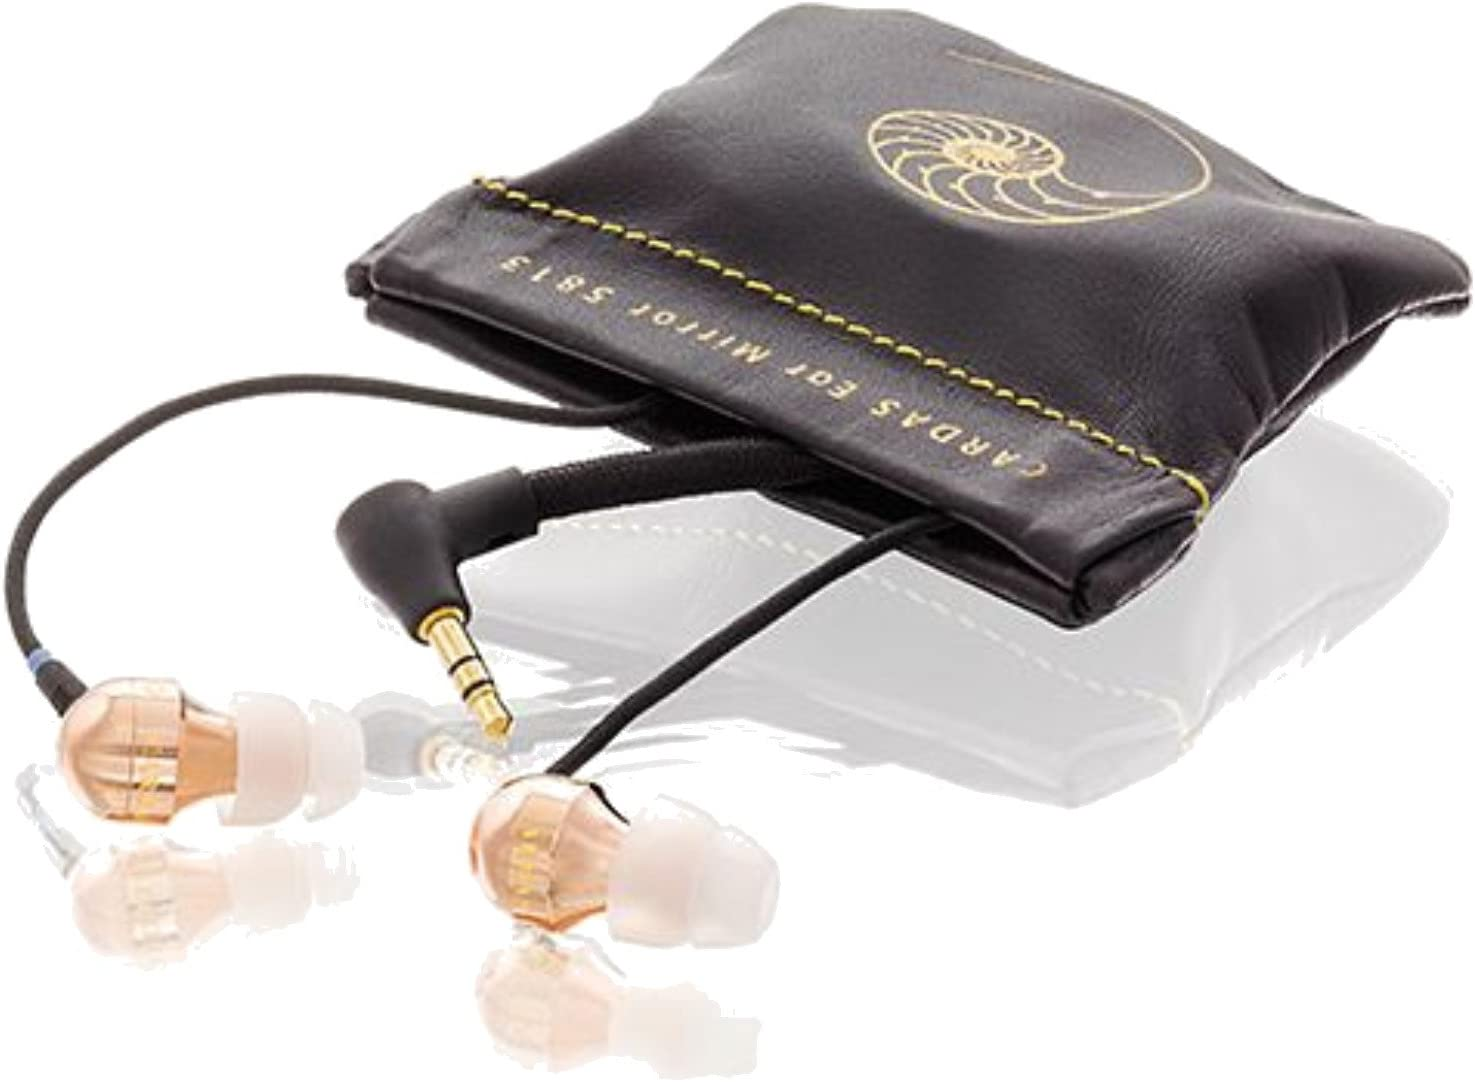 CARDAS – EM5813 Ear Speaker in-Ear Headphones